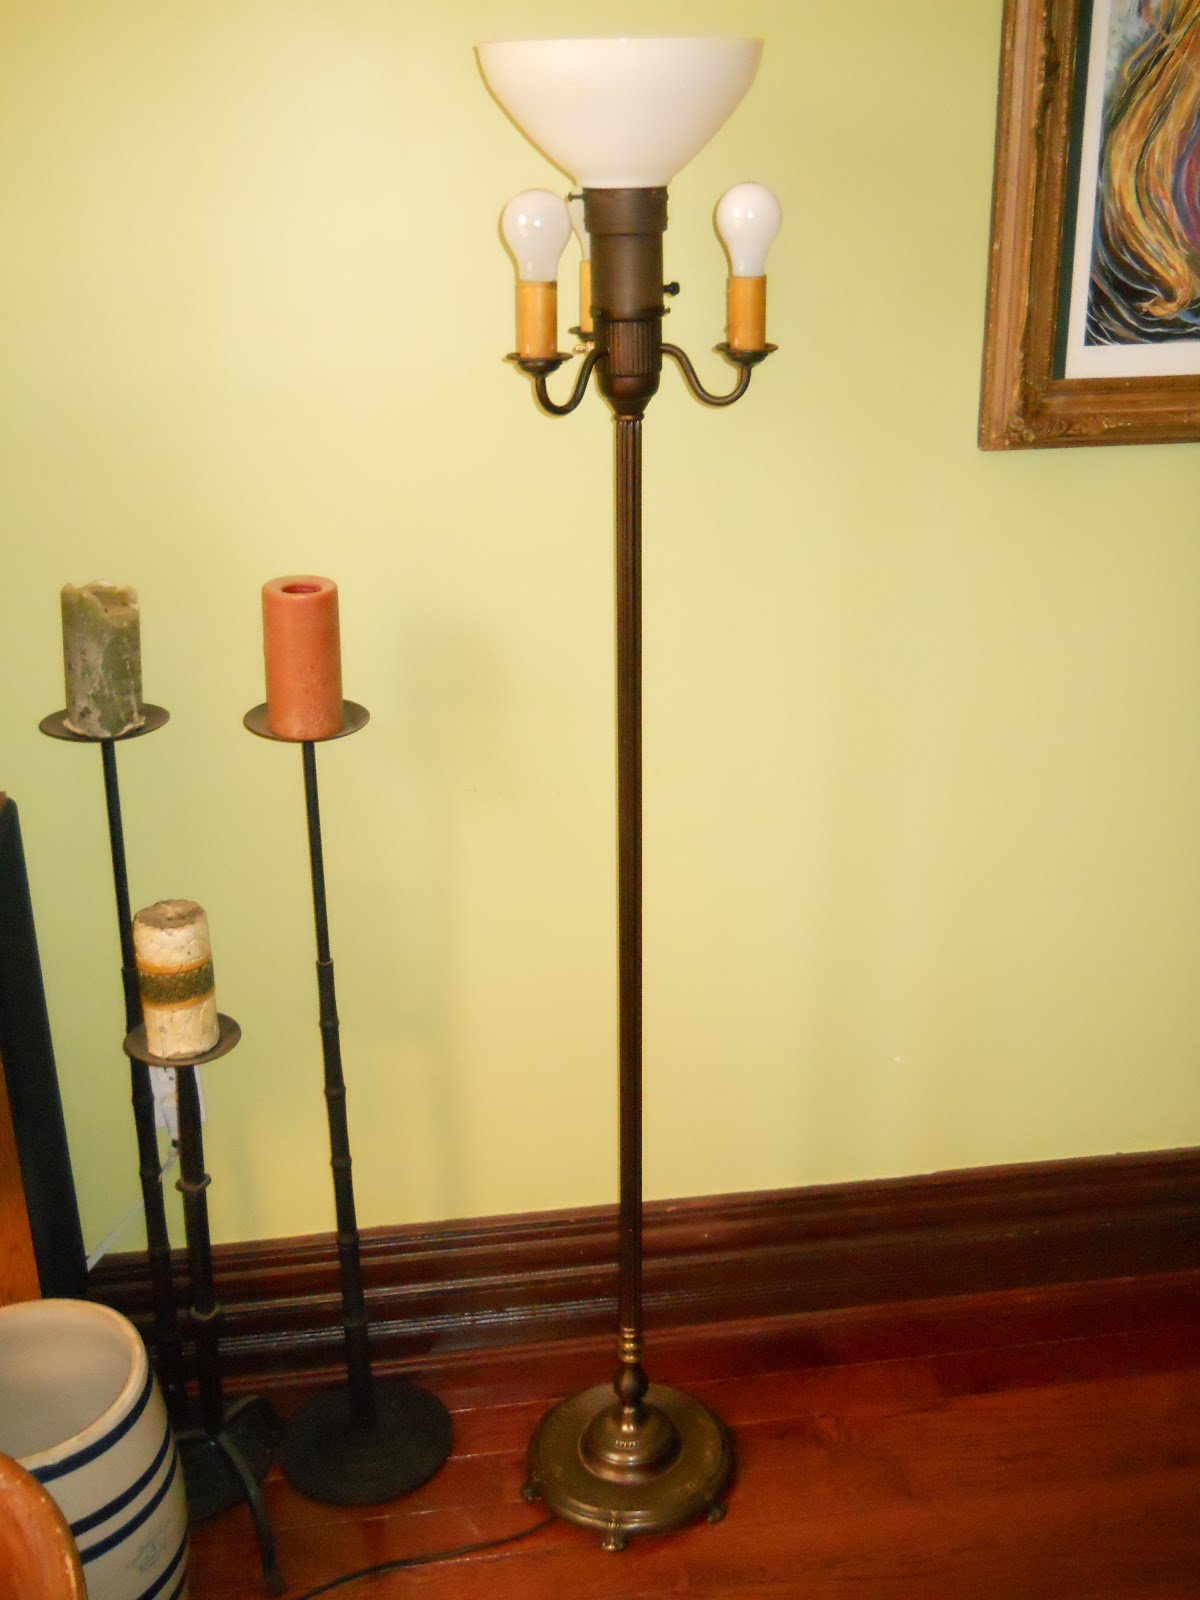 Stupendous Church Key Vintage Pairpoint Dolphin Lamp Antique Floor Lamp Wiring Cloud Hisonuggs Outletorg